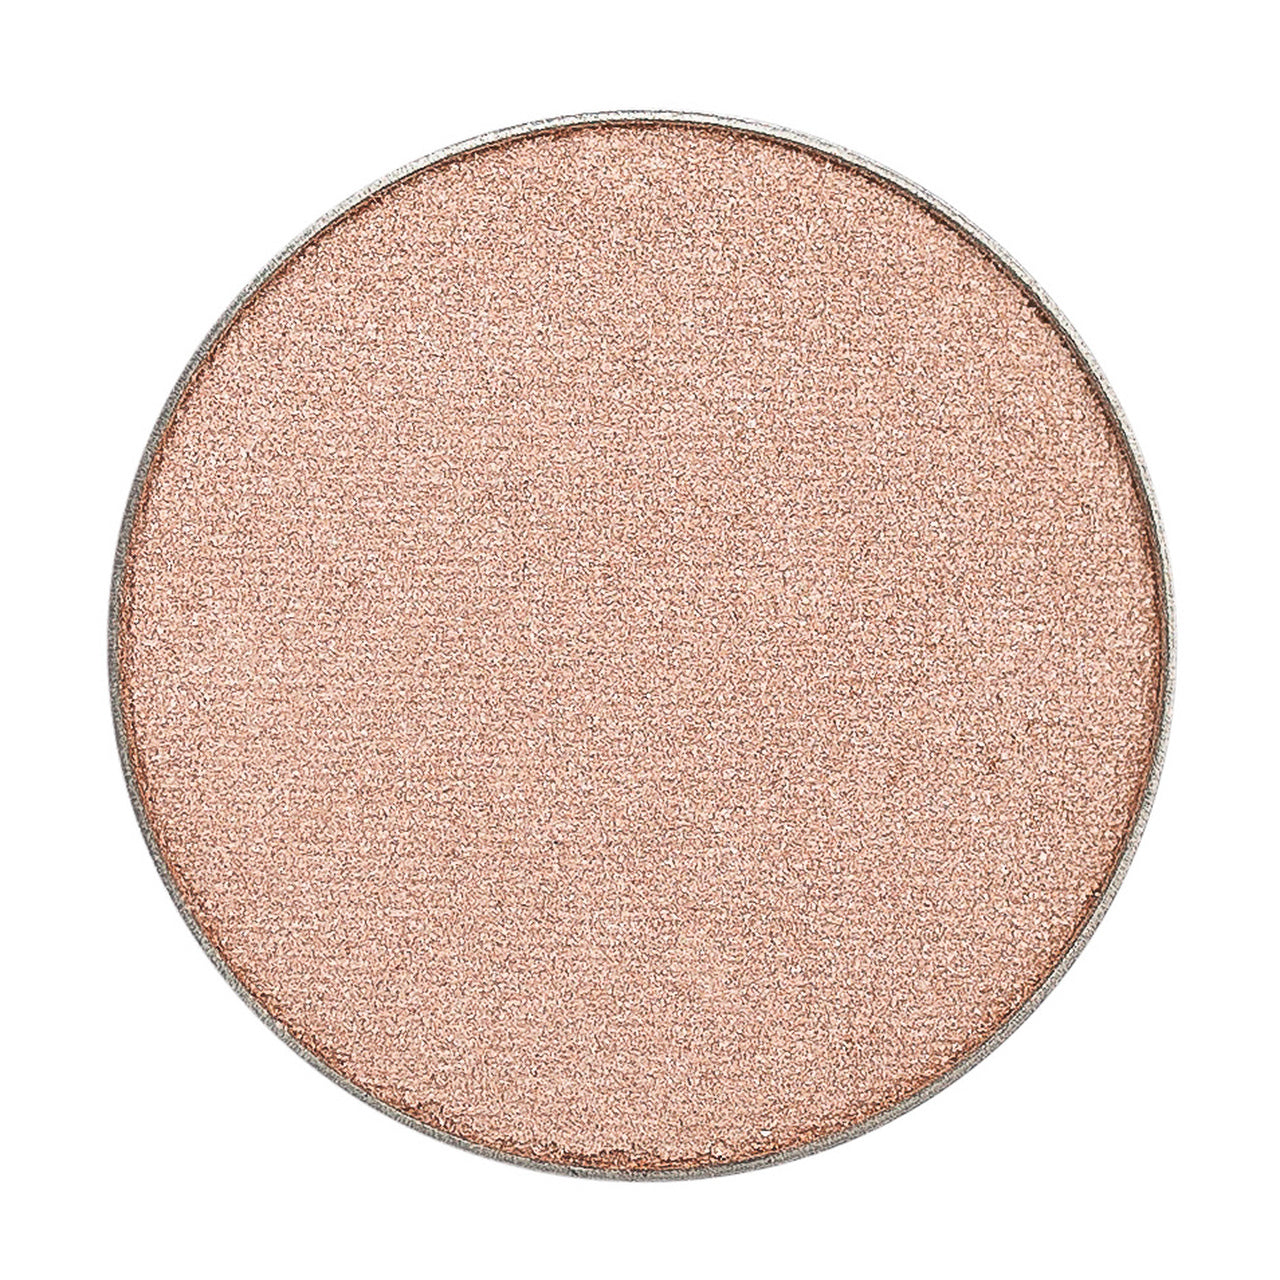 Pure Anada Pressed Eye Shadow - Illusion (refill) - NEW SHADE